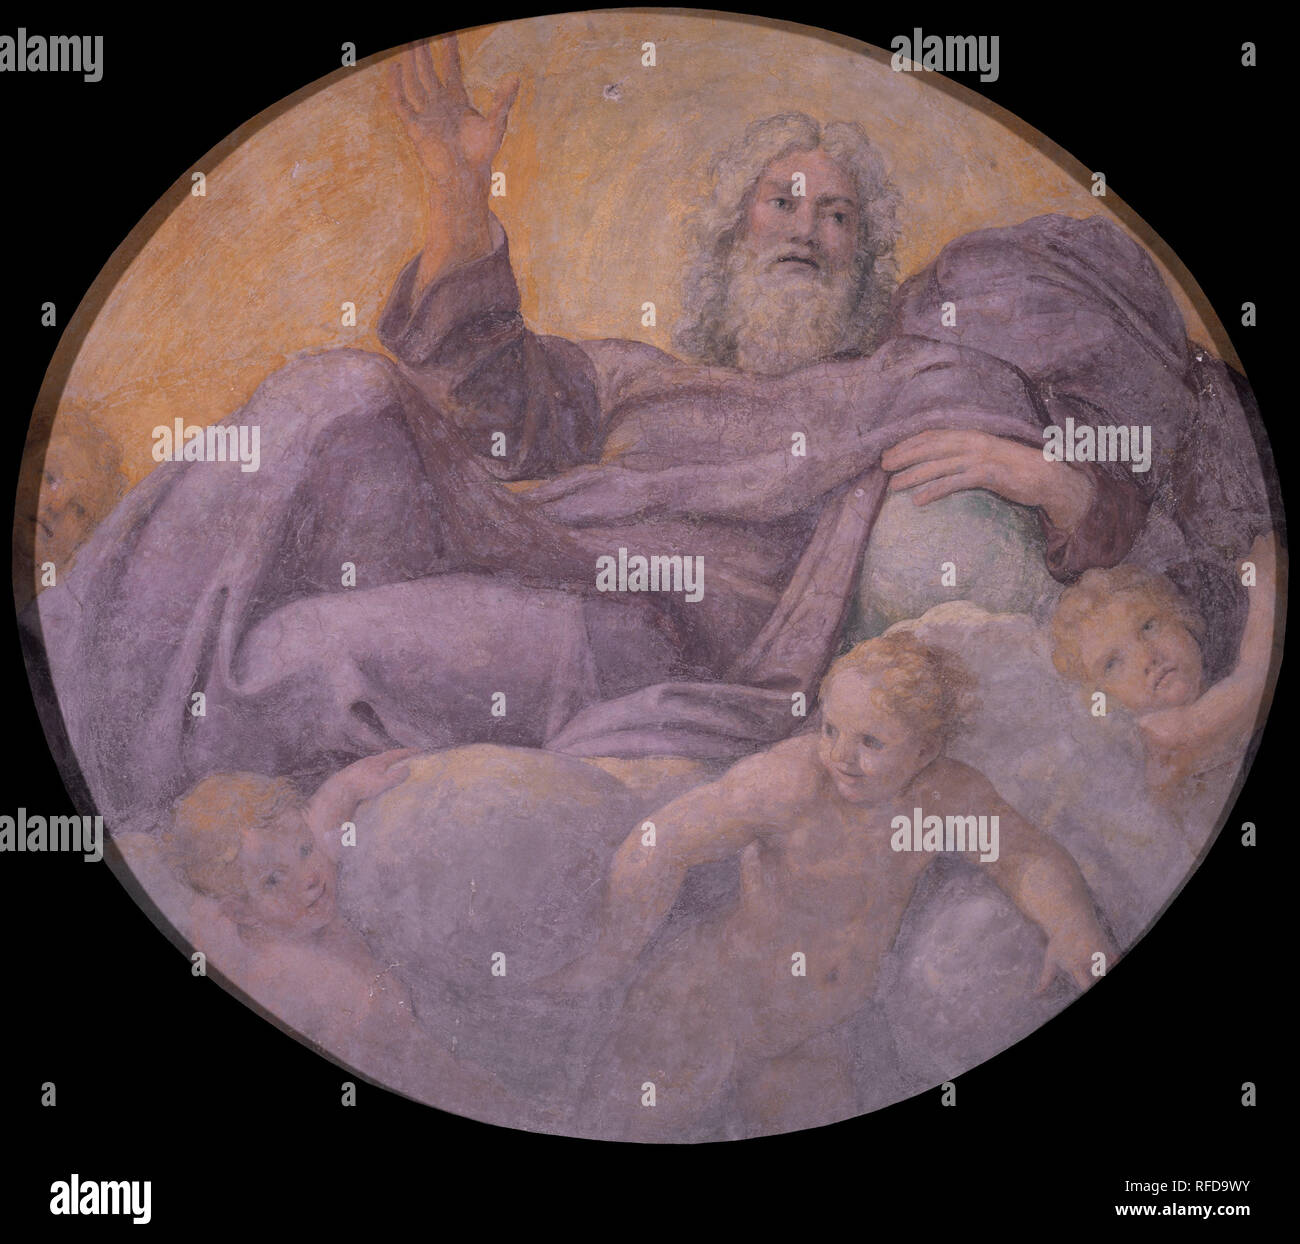 Everlasting Father. Date/Period: From 1604 until 1605. Painting. Fresco transferred to canvas. Diameter: 214 cm (84.2 in). Author: Annibale Carracci. FRANCESCO ALBANI. CARRACCI, ANNIBALE. - Stock Image